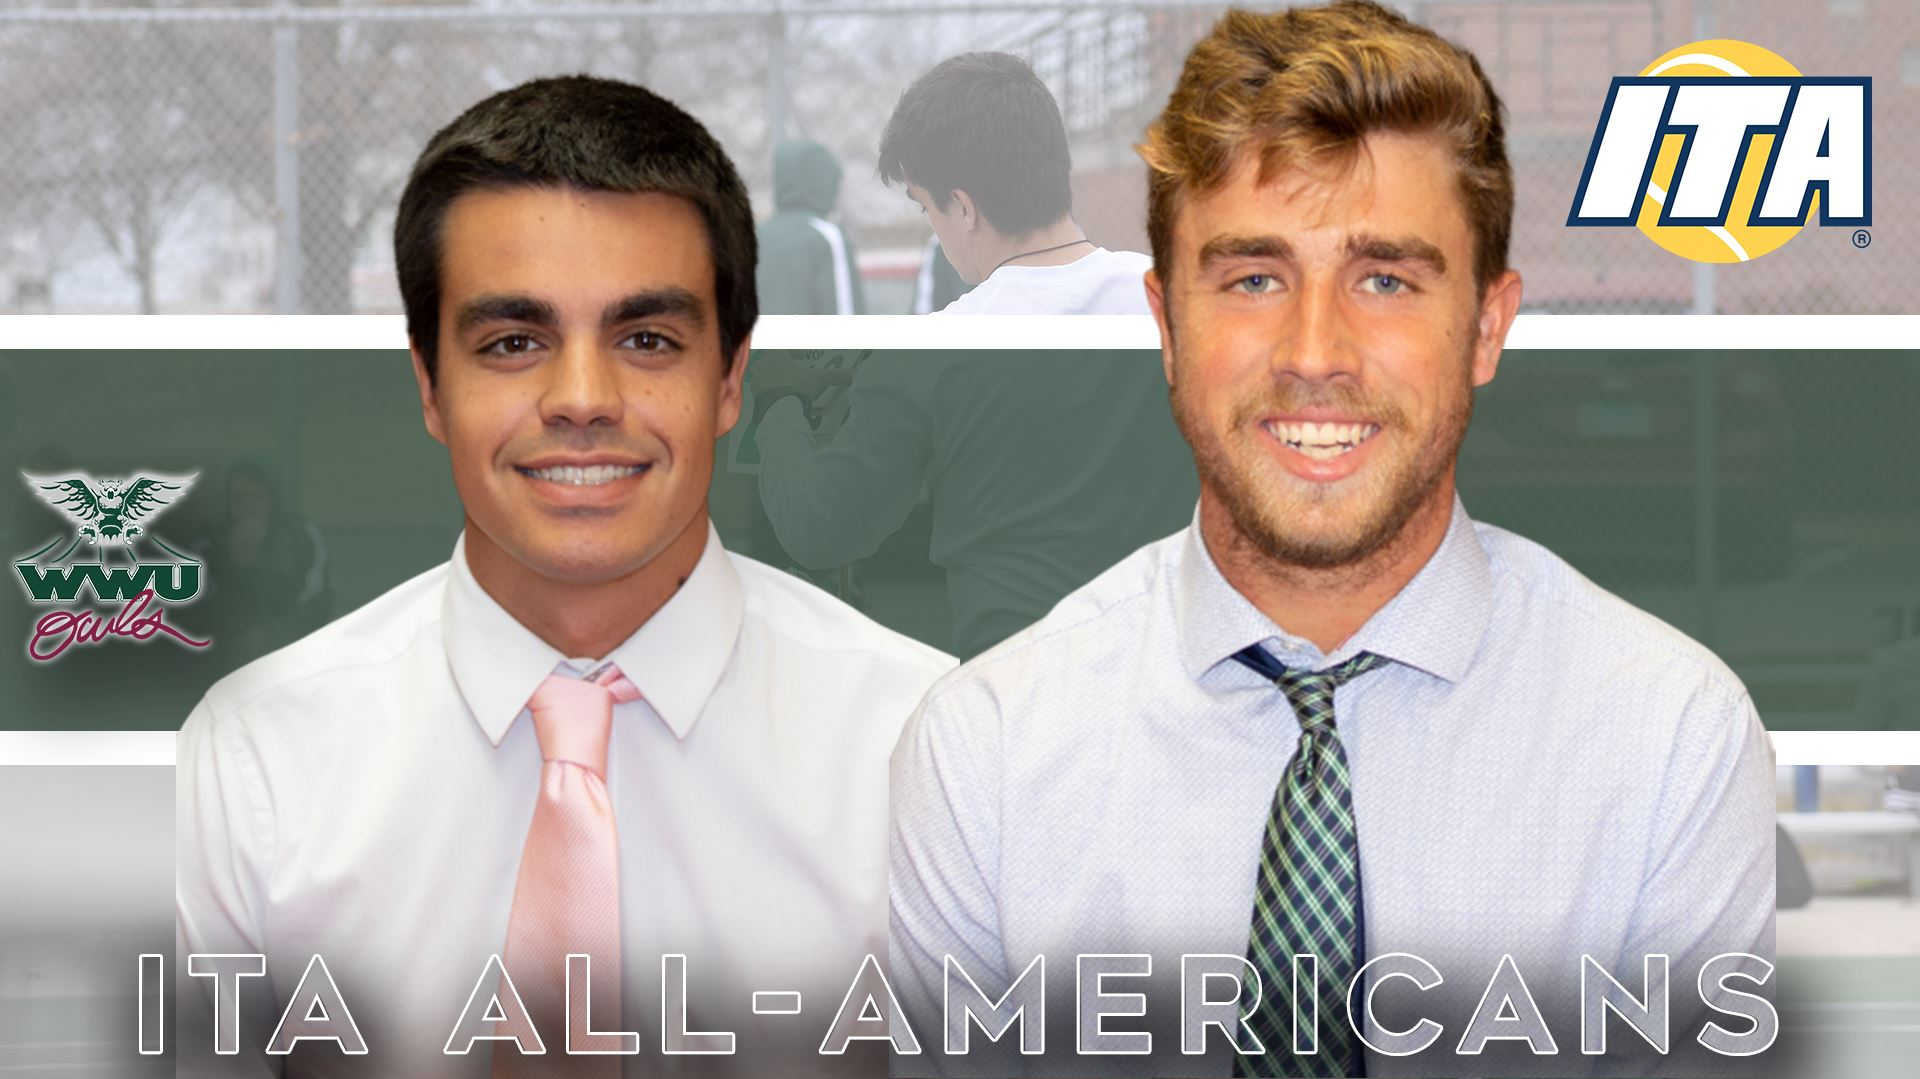 Former tennis star Javier Callejo named All-American again